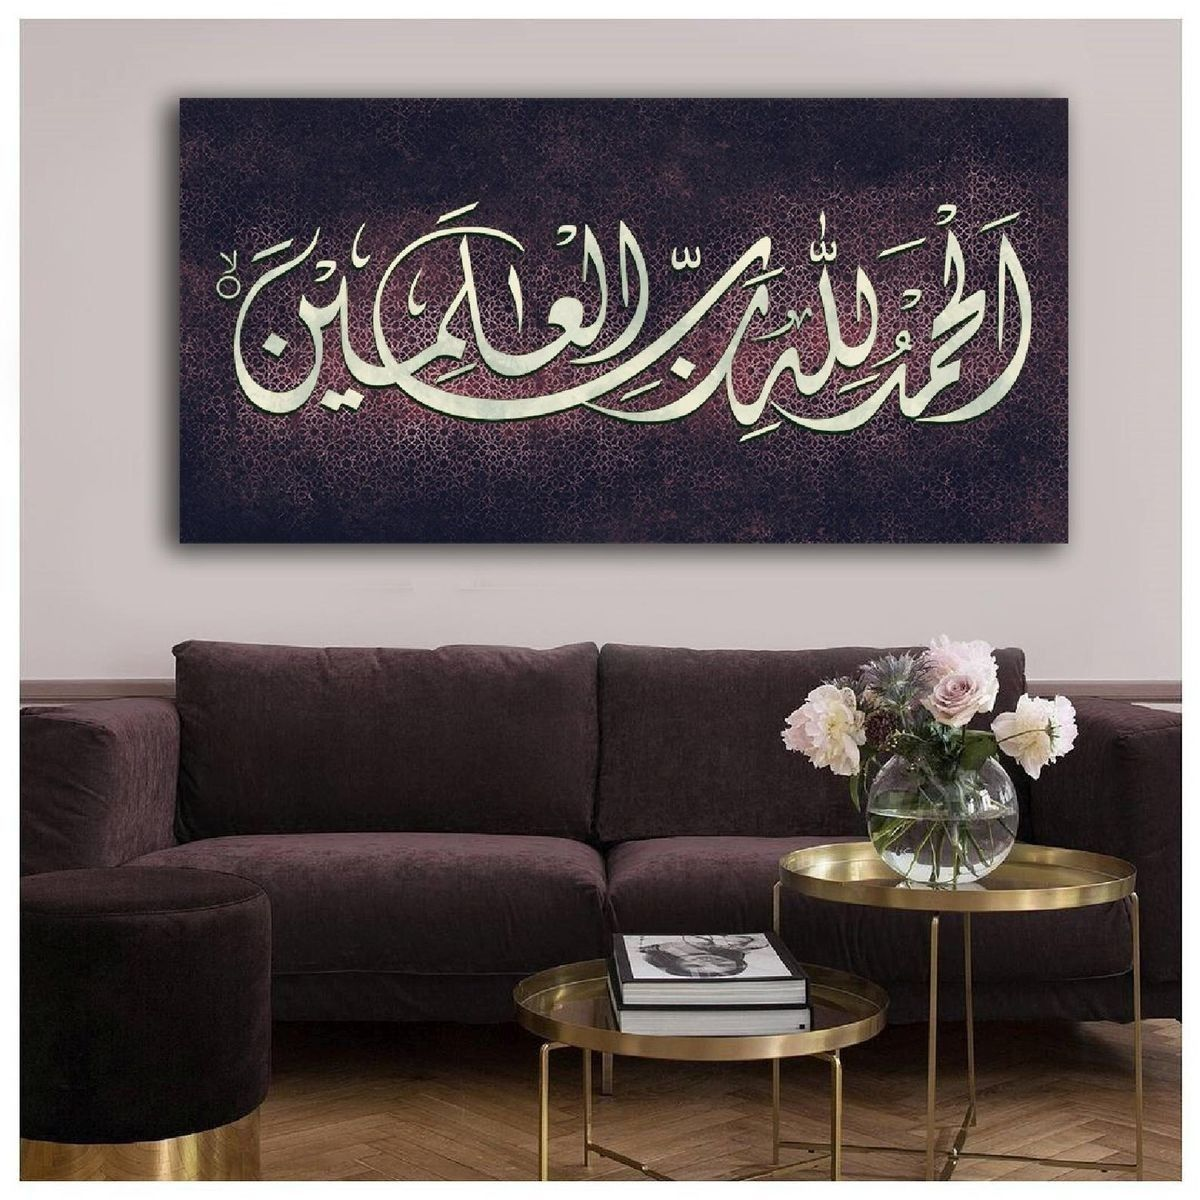 Pin by Miraal on Calligraphy in 2020 | Islamic calligraphy ...